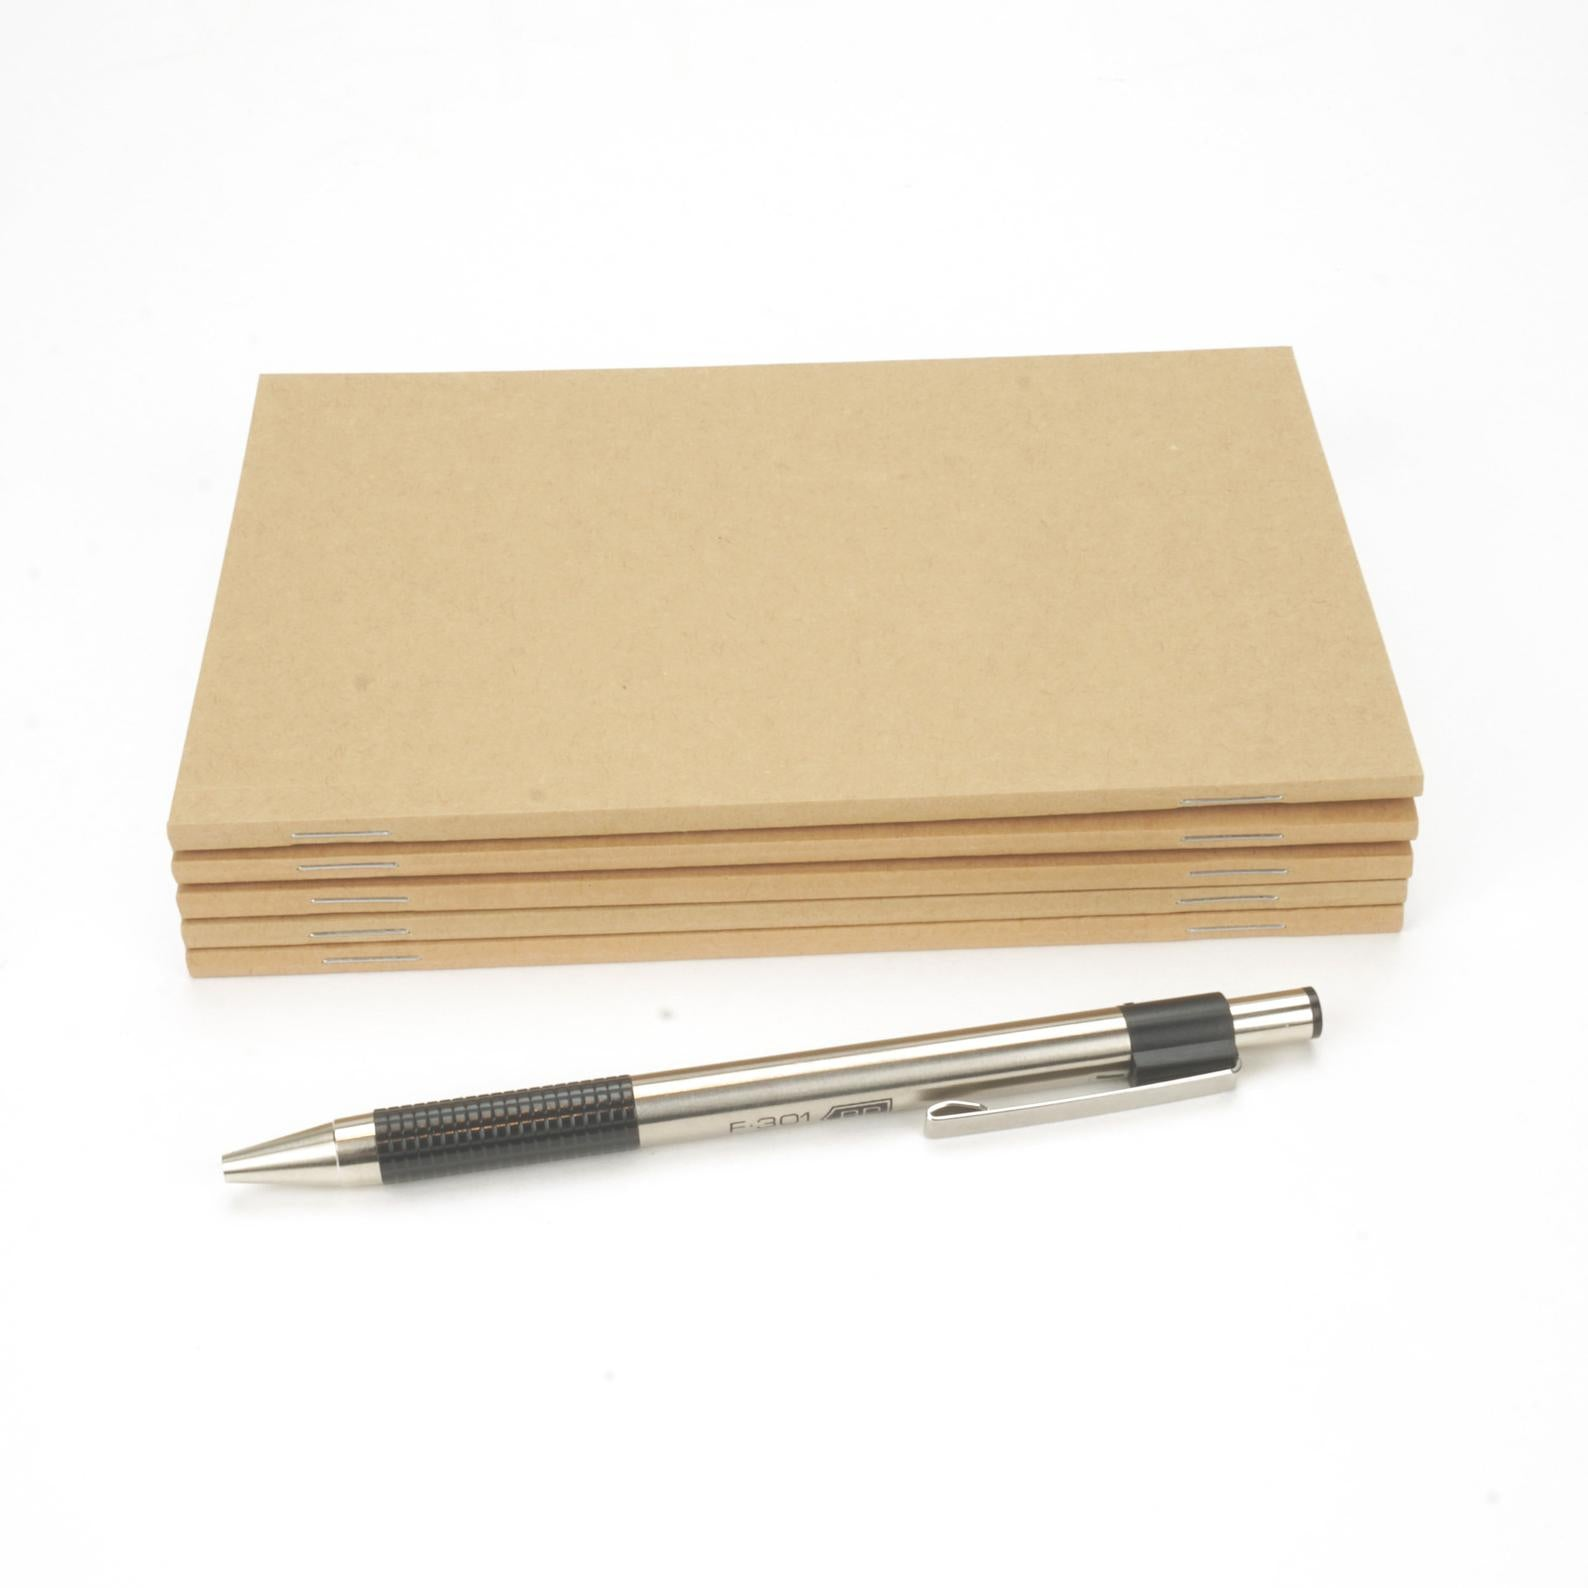 "Perfect-Stapled, Standard Kraft Brown Notebook, Blank Pages, 4"" x 6"", A6"